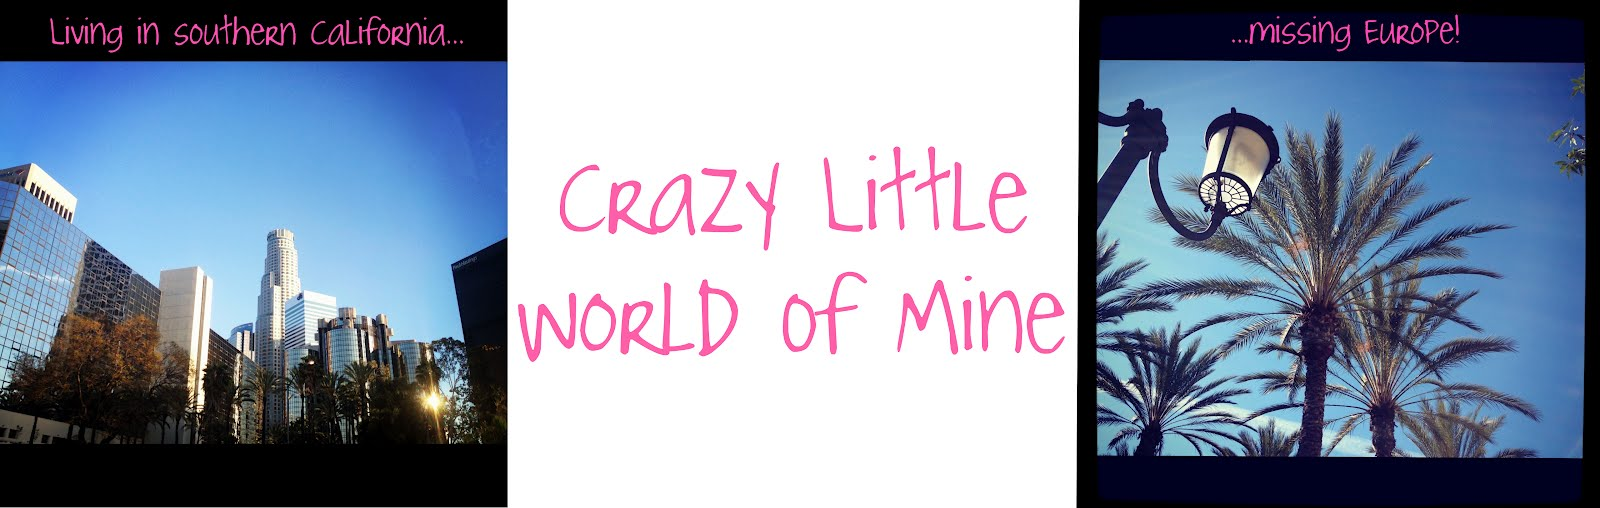 Crazy Little World Of Mine